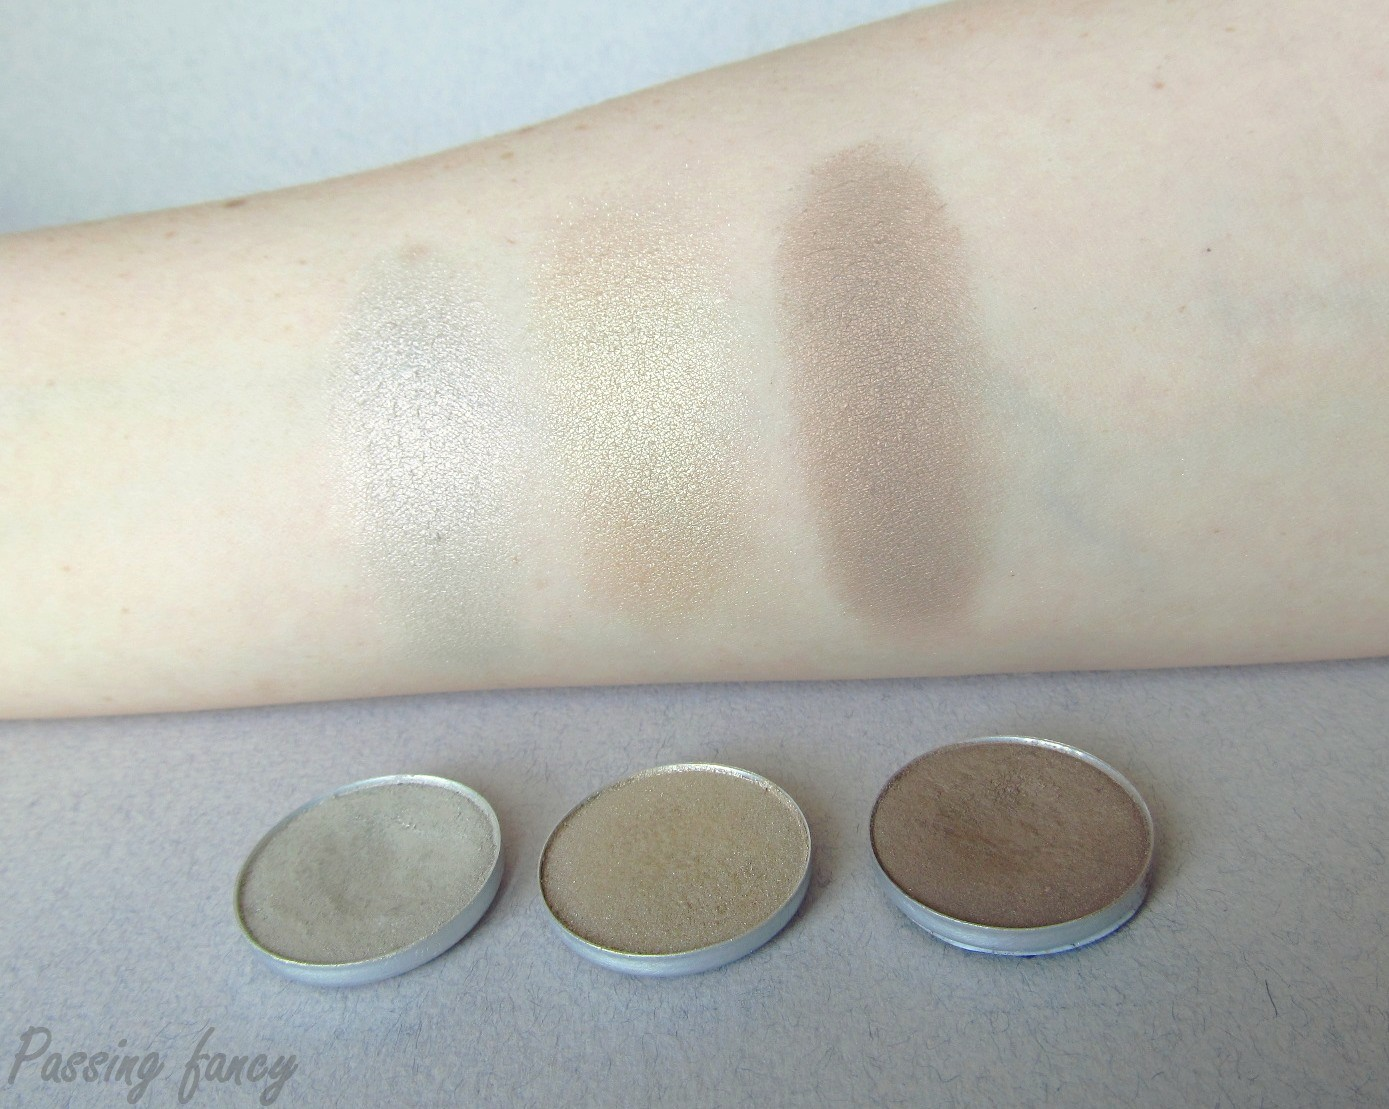 Passing Fancy Mac Eyeshadow Collection And Dupes